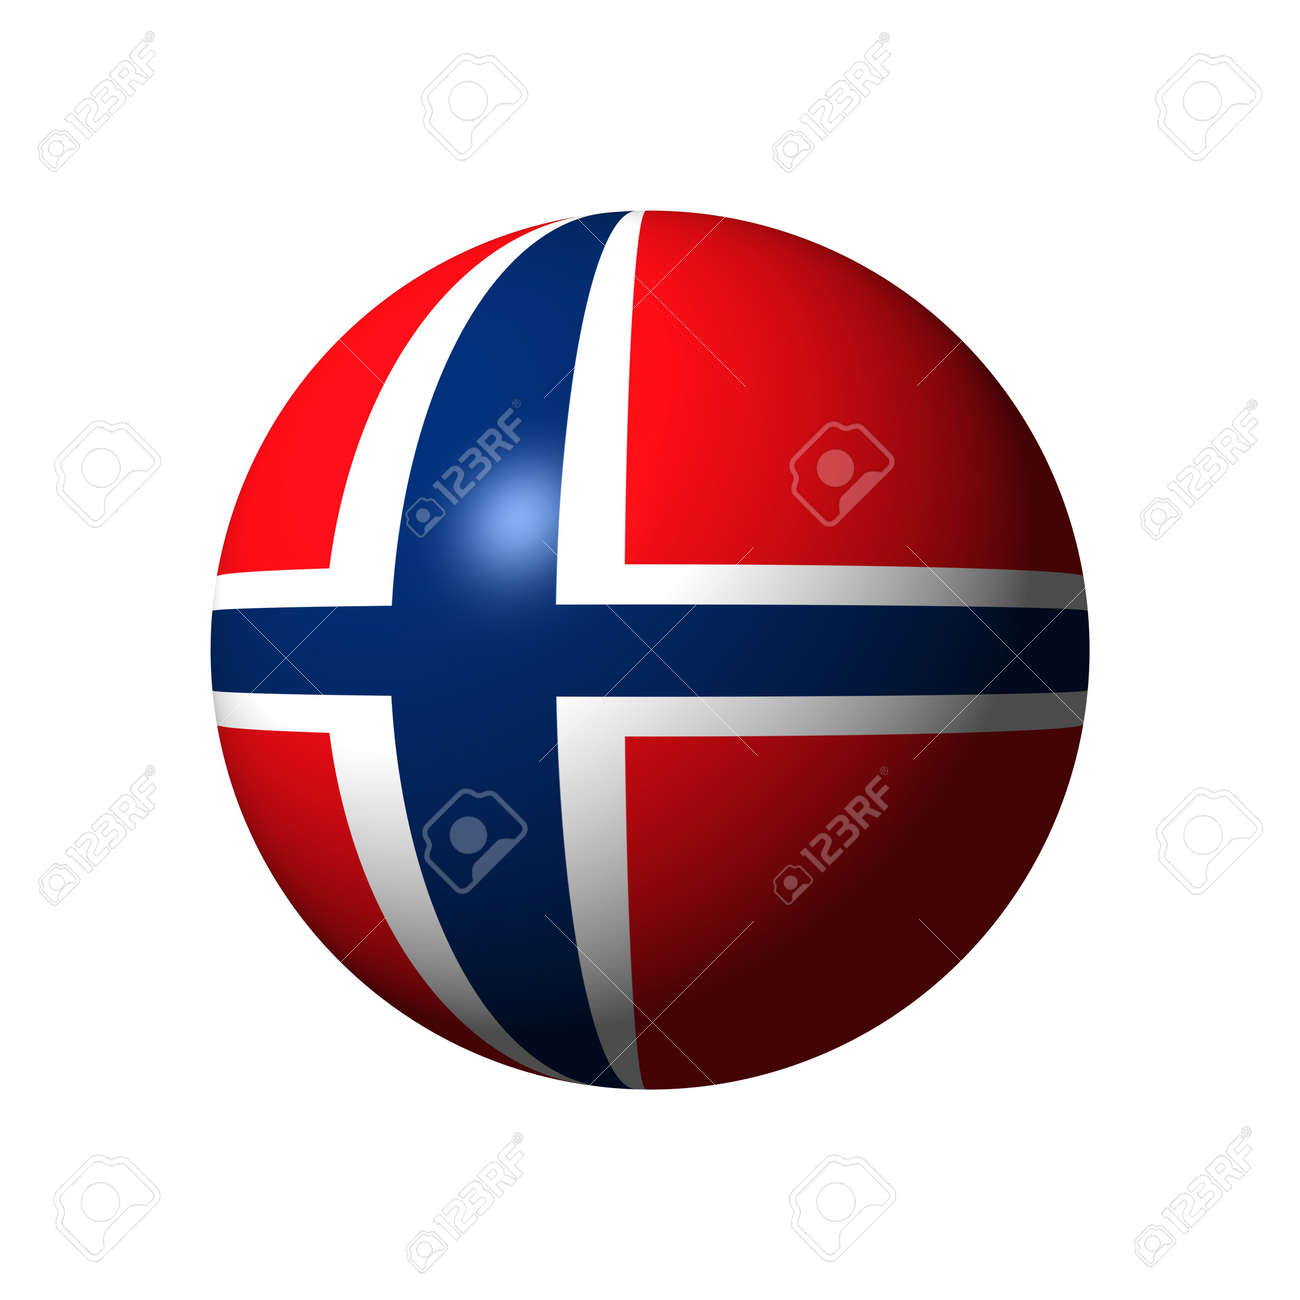 Sphere with flag of Norway nation Stock Photo - 21583993